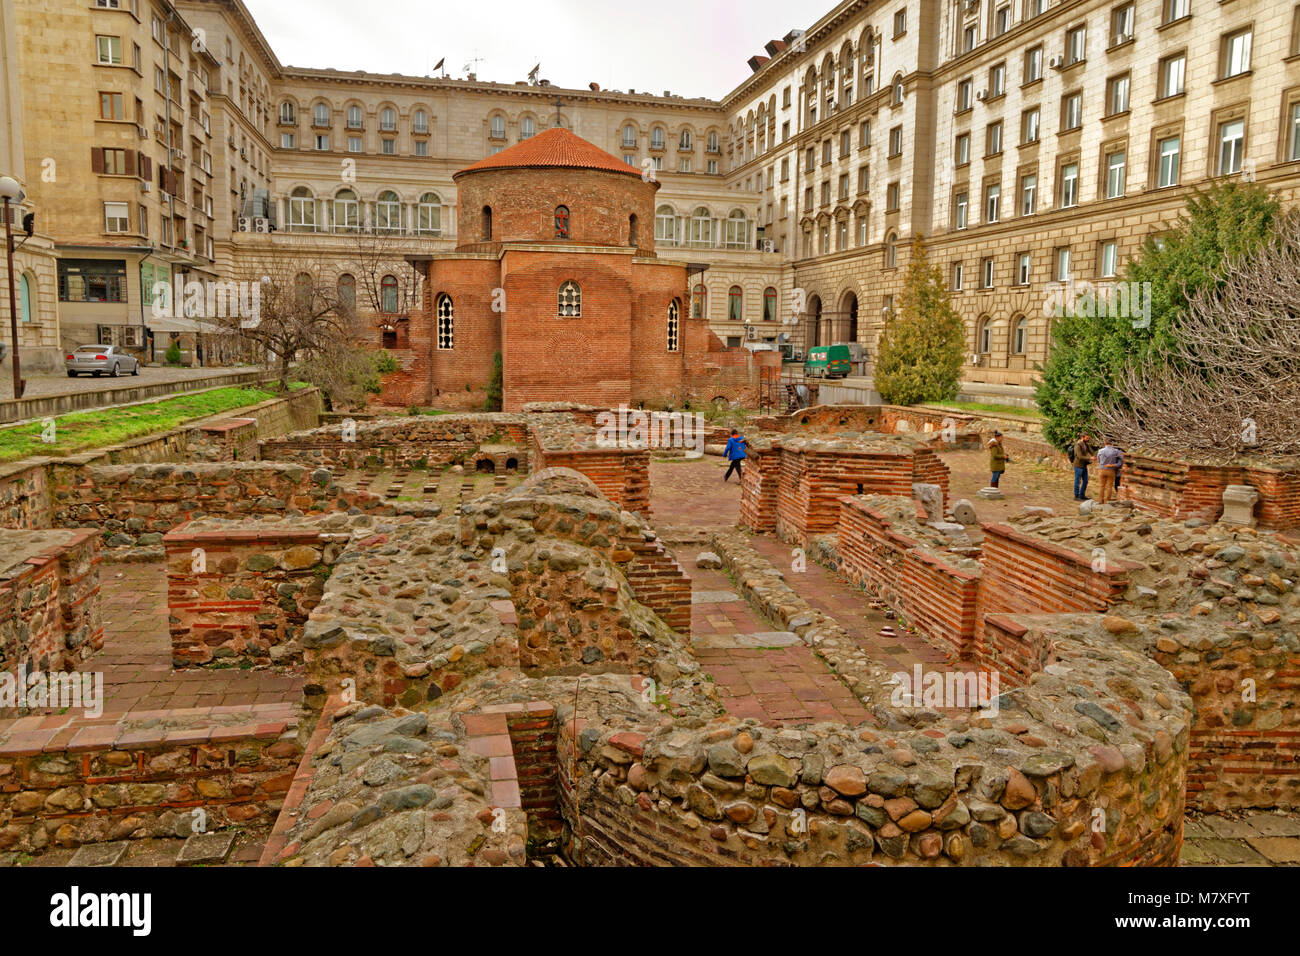 Remains of the Church of St. George Rotunda in Sophia city centre, Bulgaria. - Stock Image